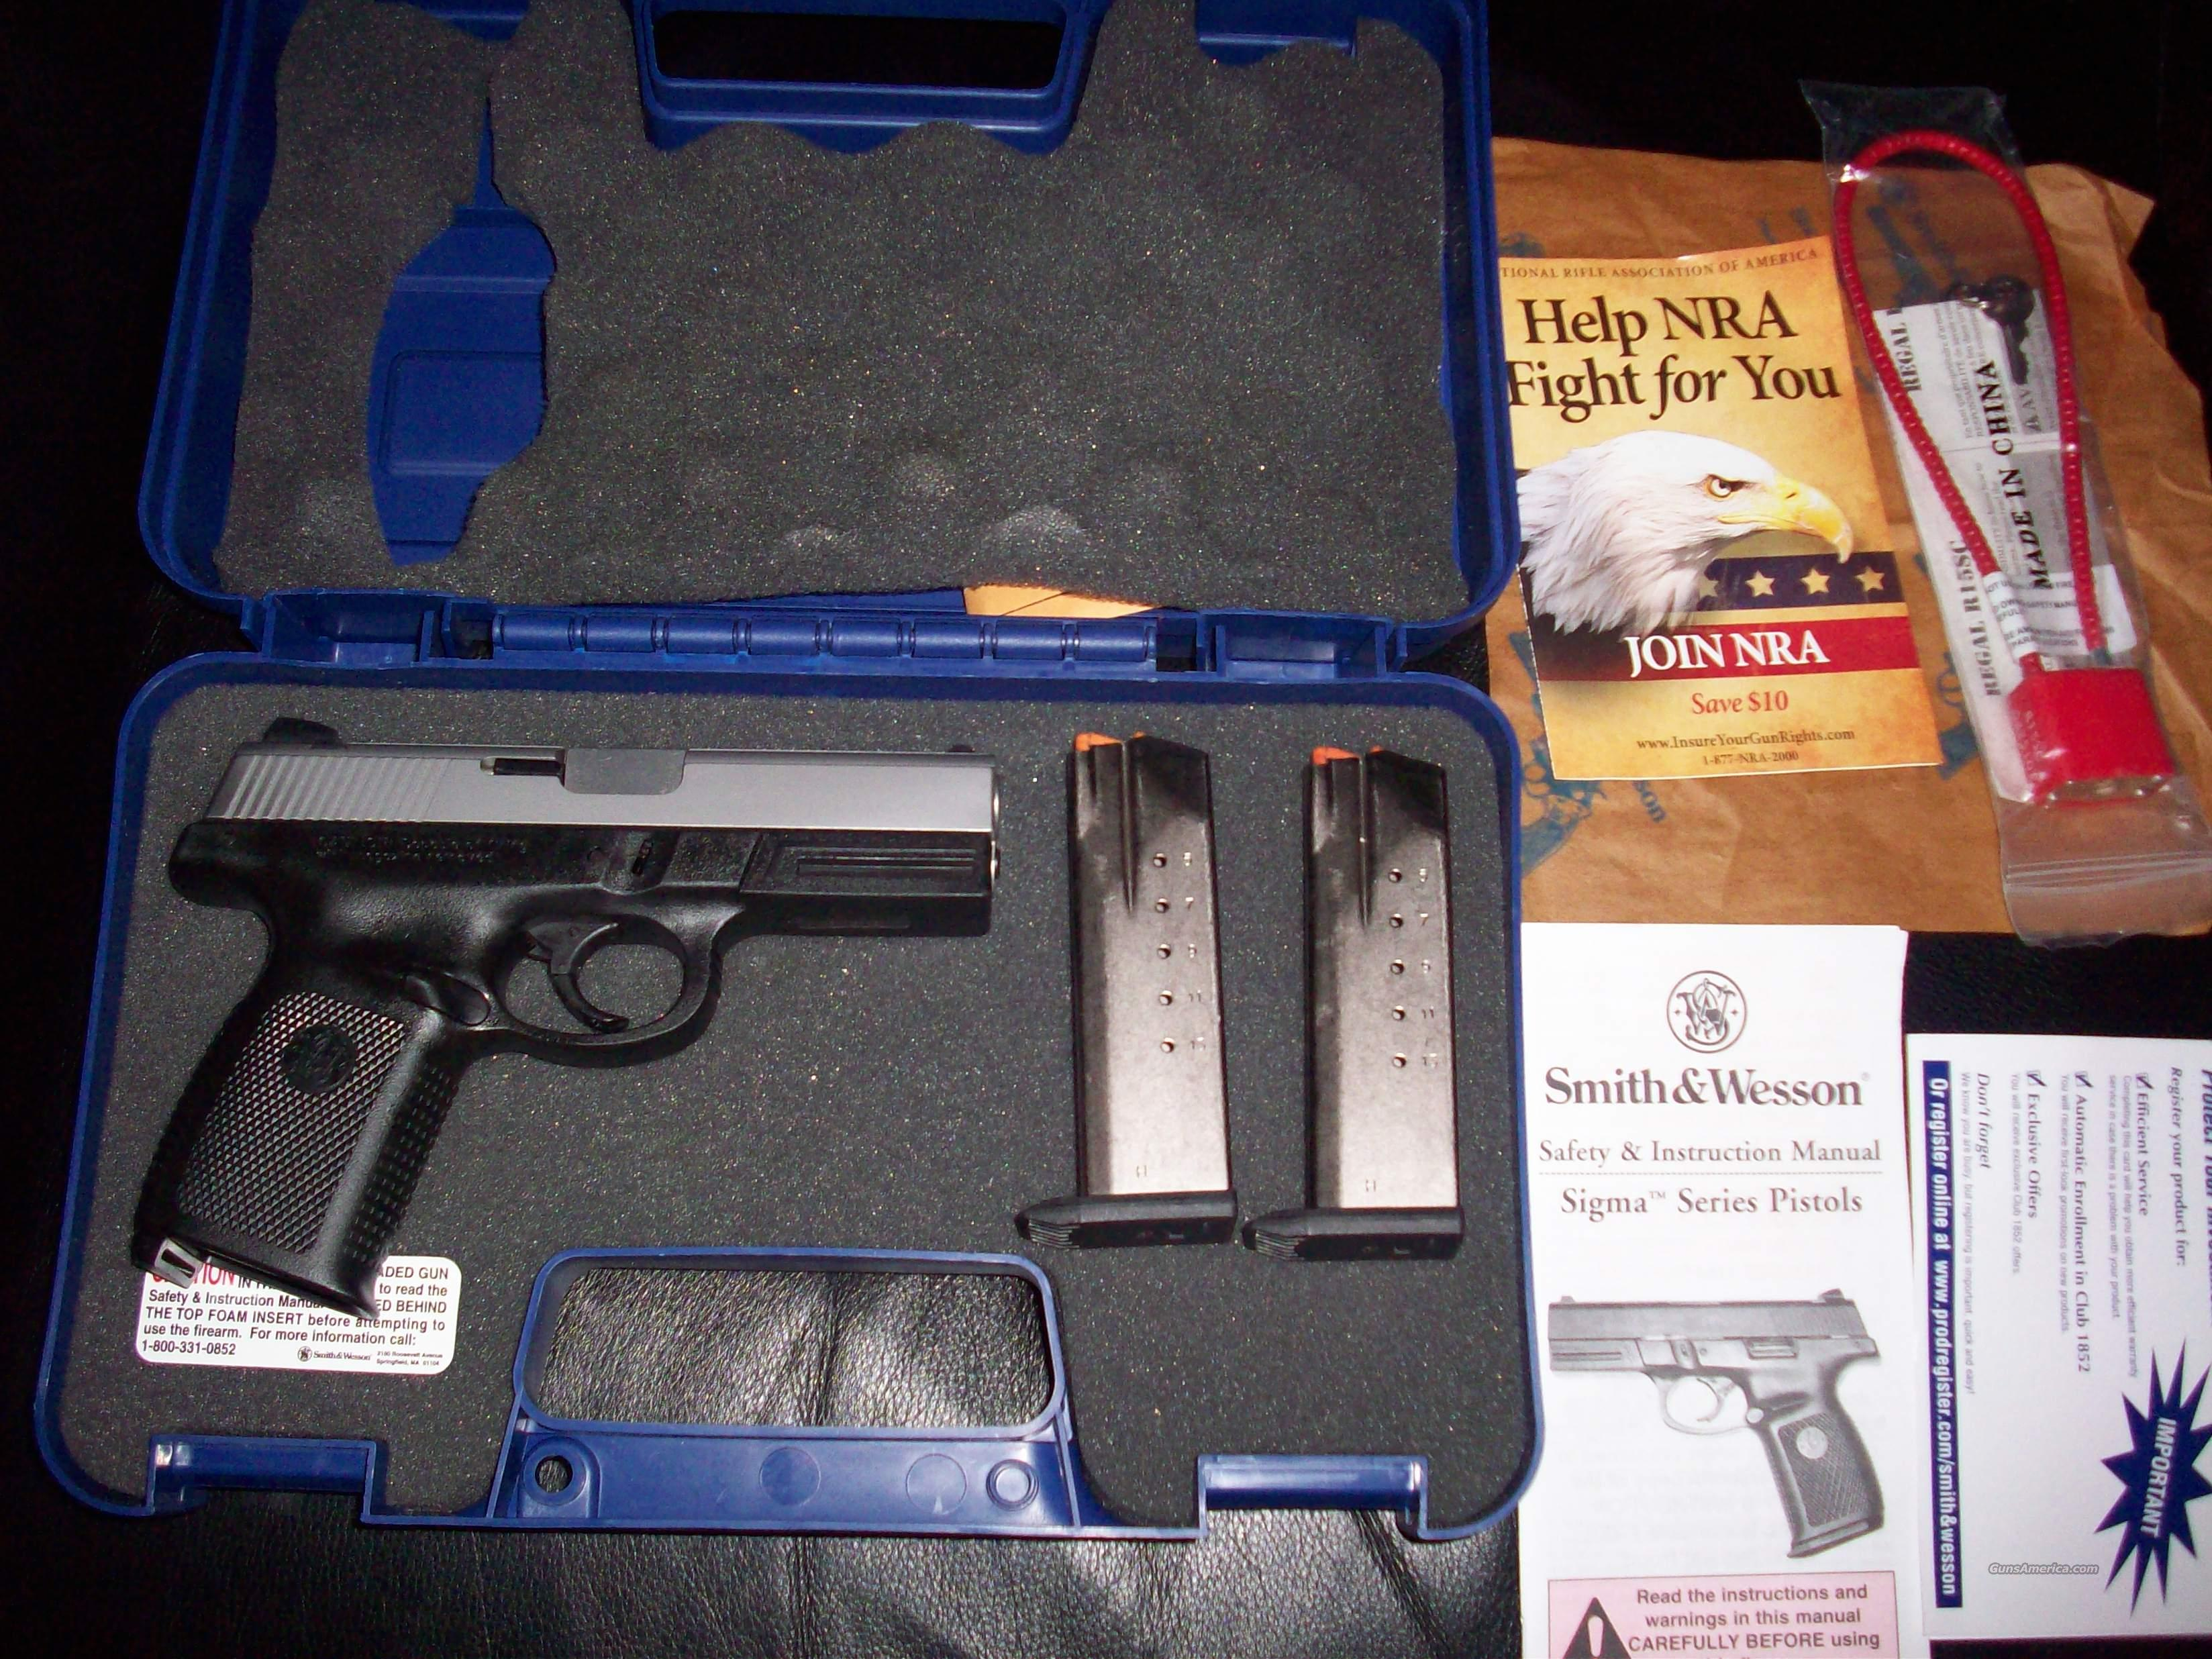 Smith & Wesson Sigma .40SW Auto Pistol Excellent Condition  Guns > Pistols > Smith & Wesson Pistols - Autos > Polymer Frame